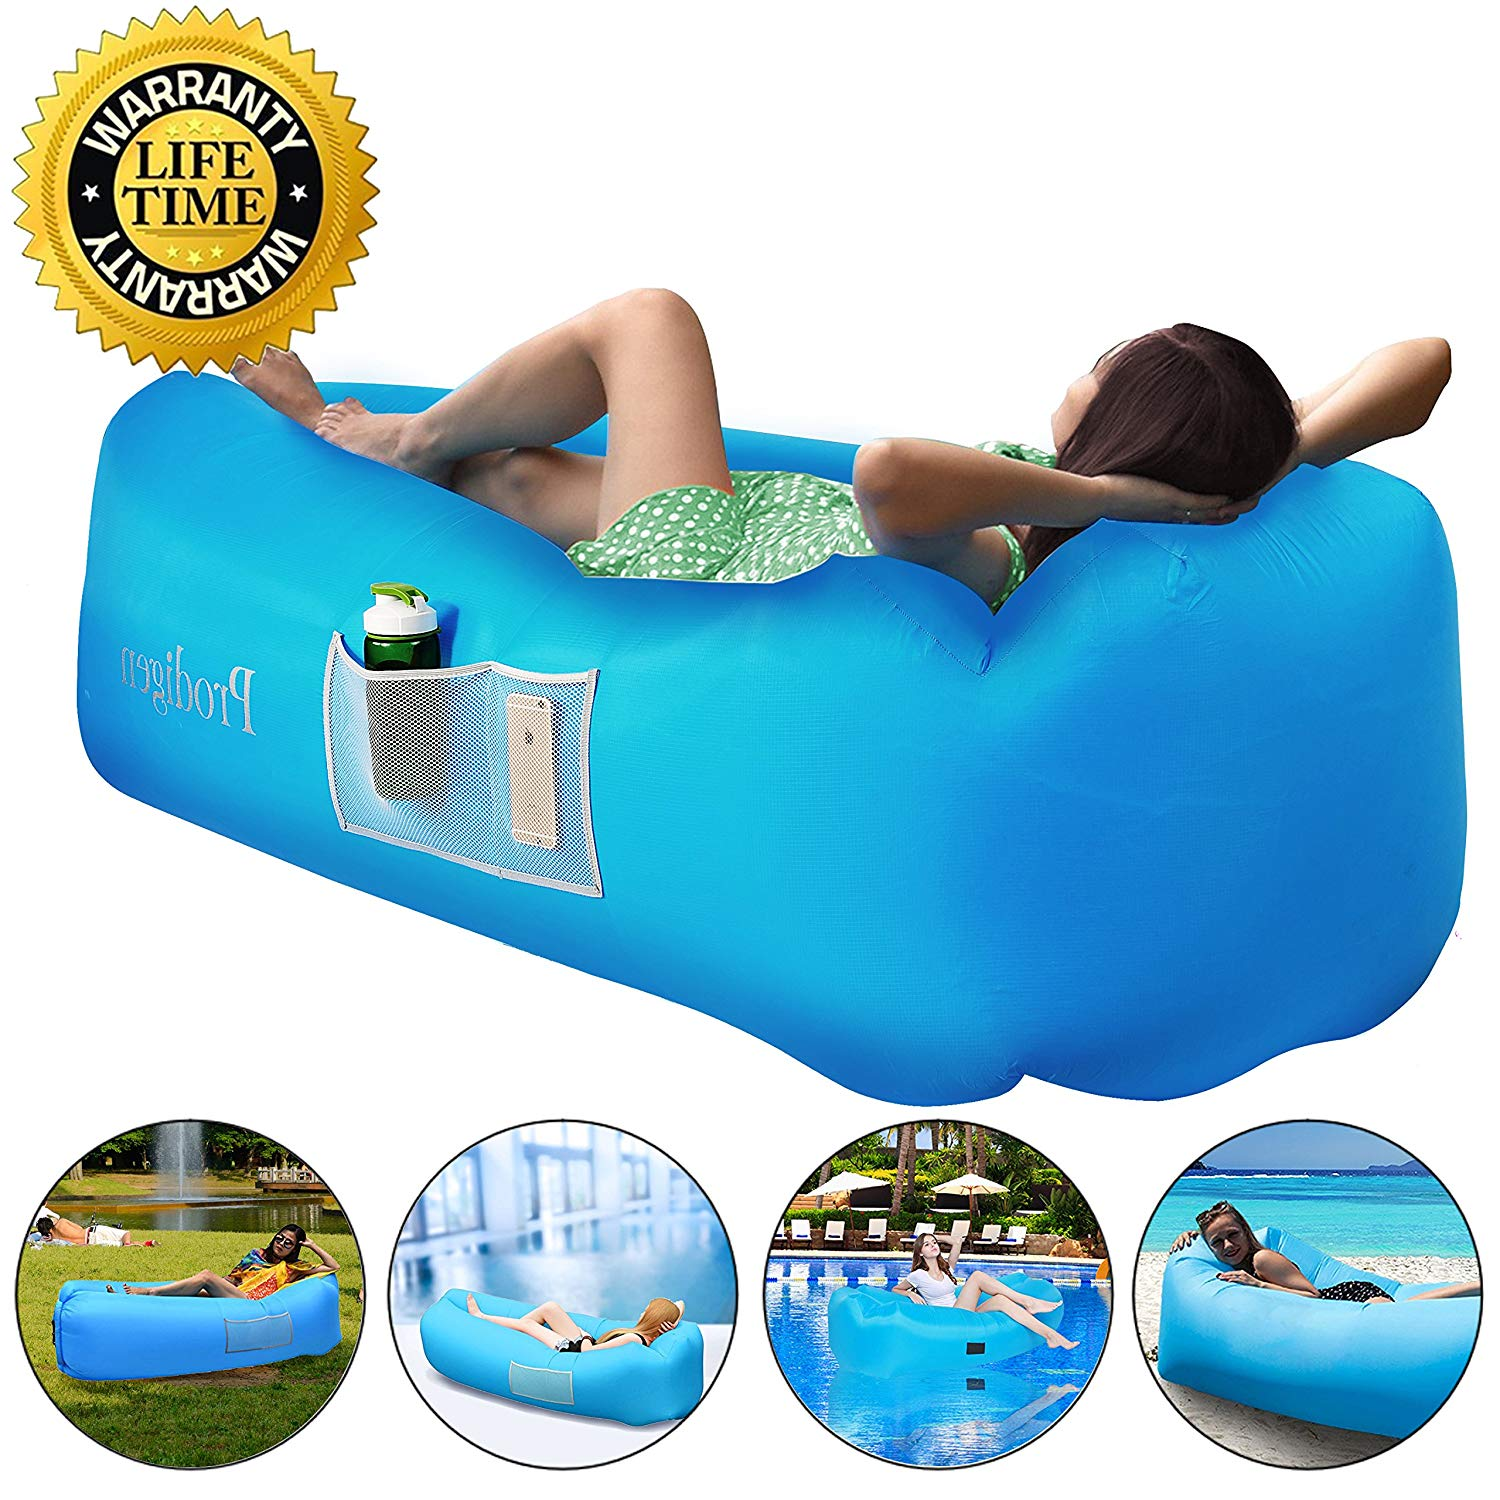 Best Inflatable Sofas In 2020 Buy The Best Infralable Furniture - Inflatable Chair Sofa